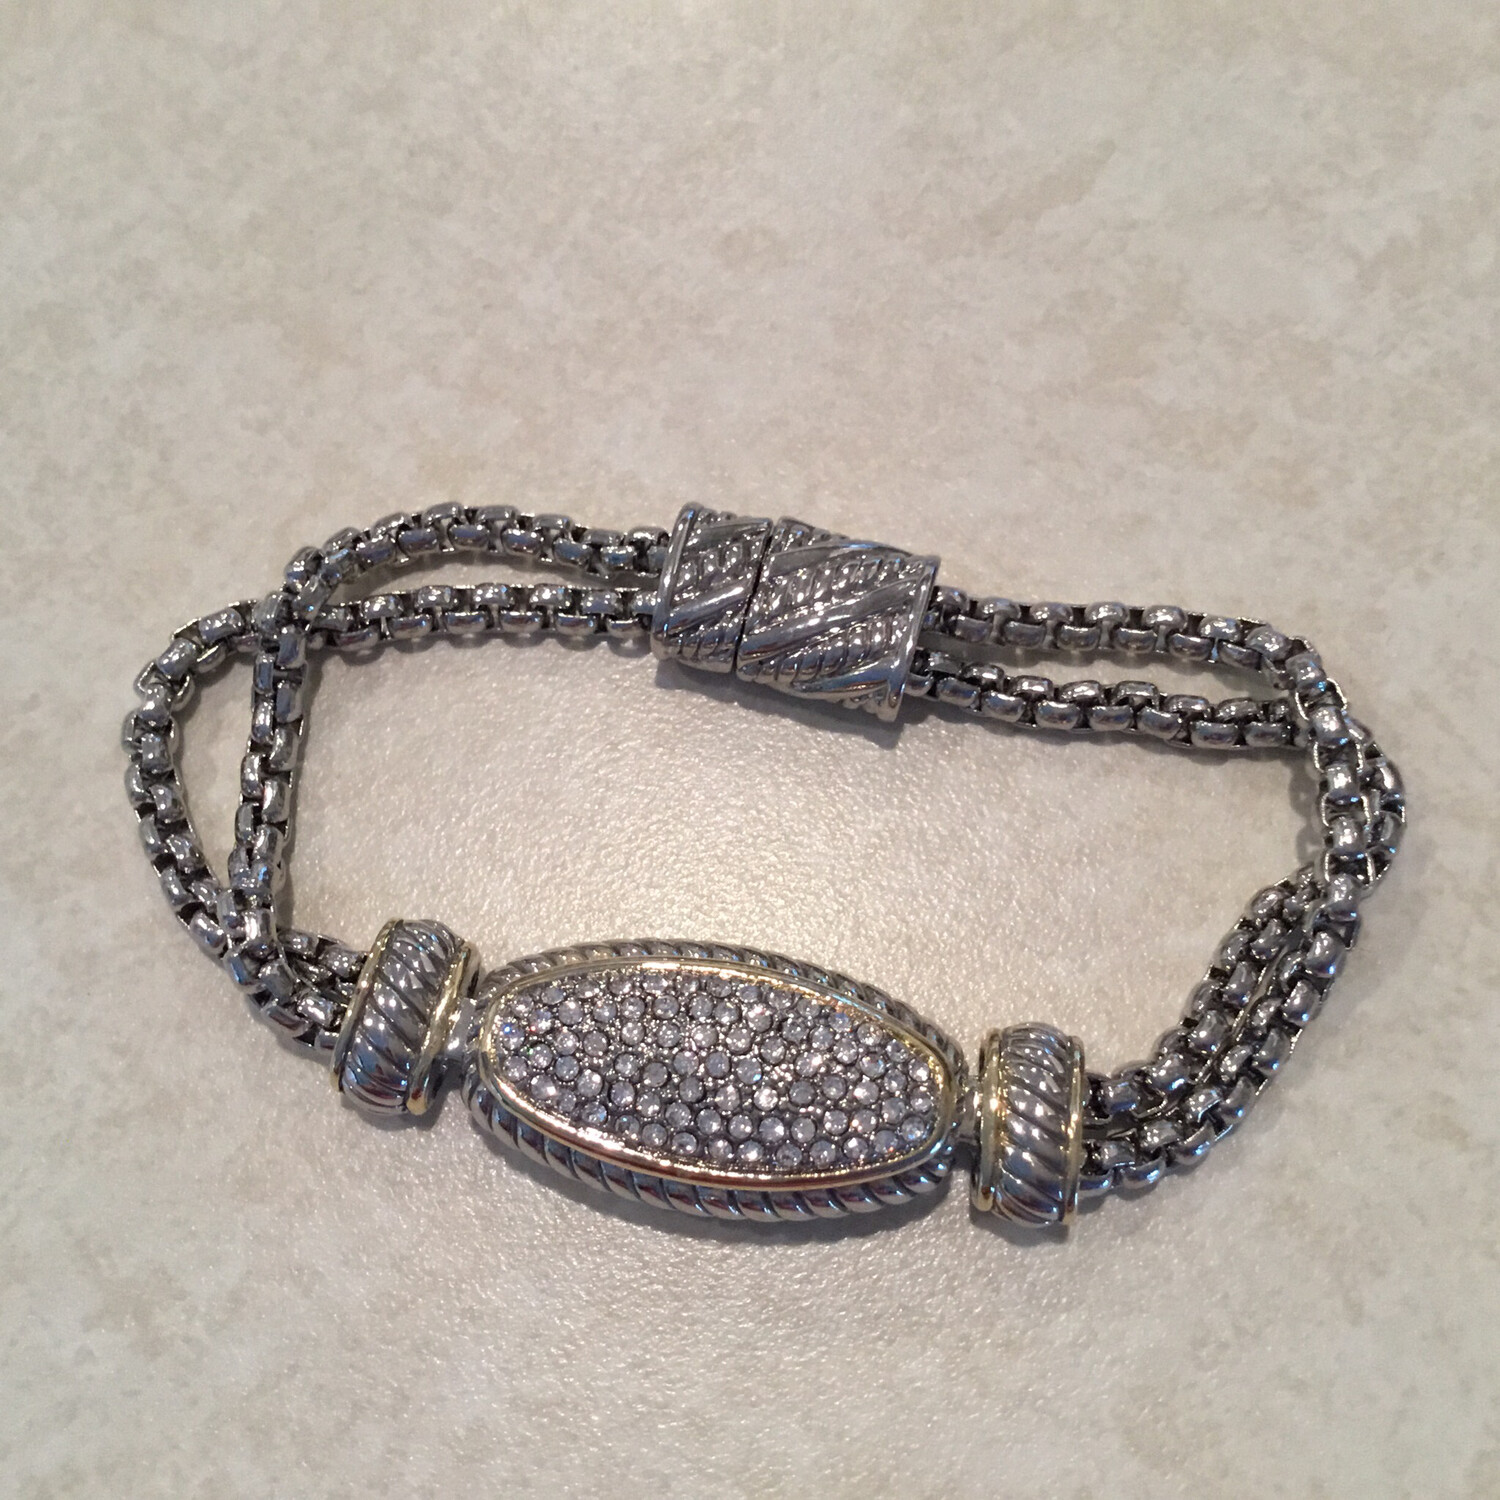 Elegant Two Row Bracelet With Gold Pave Center.